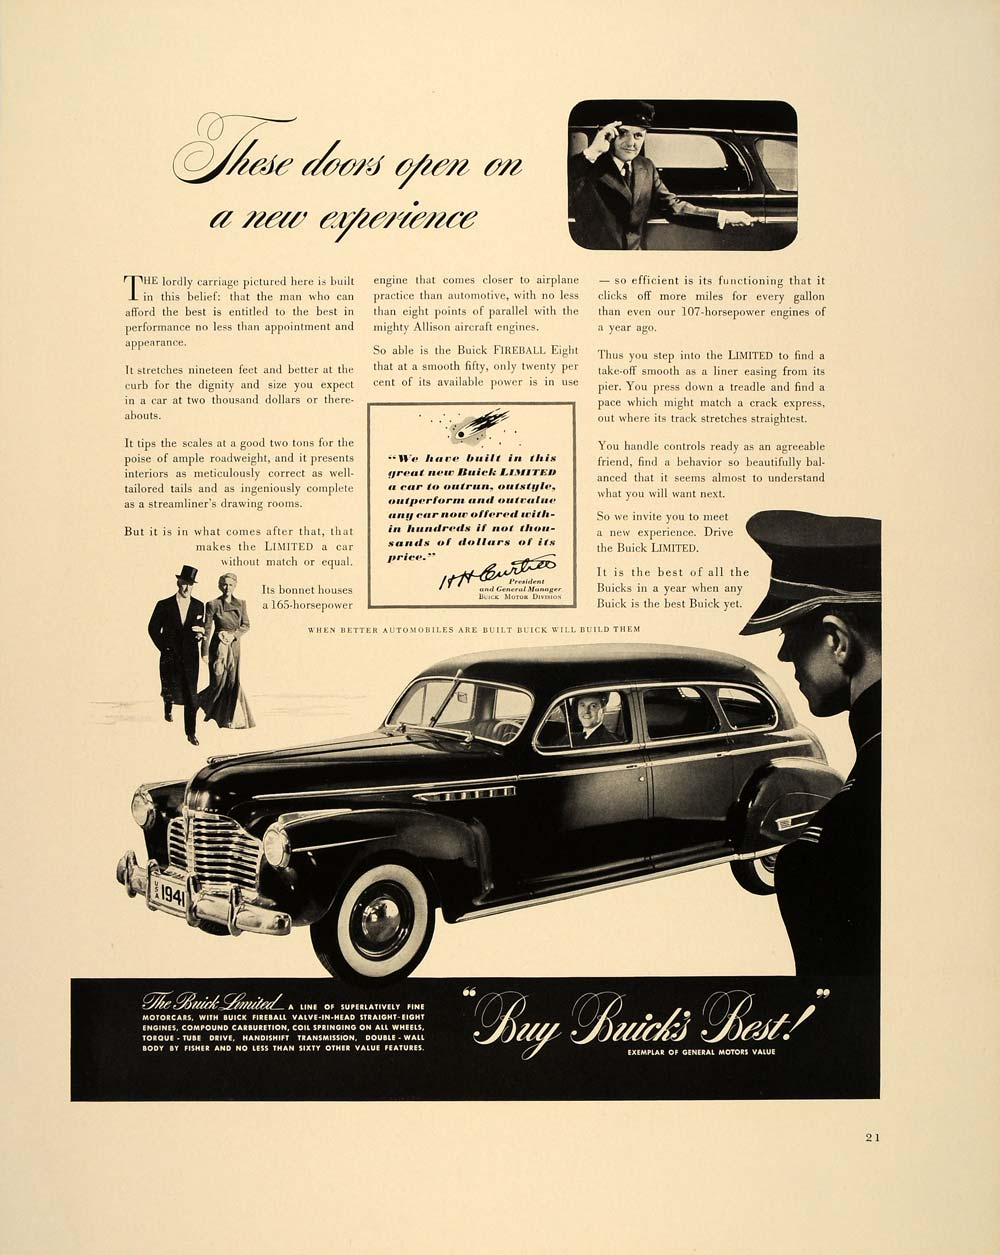 1940 Ad Buick Limited Sedan Vintage Automobile Car - ORIGINAL ADVERTISING FT6